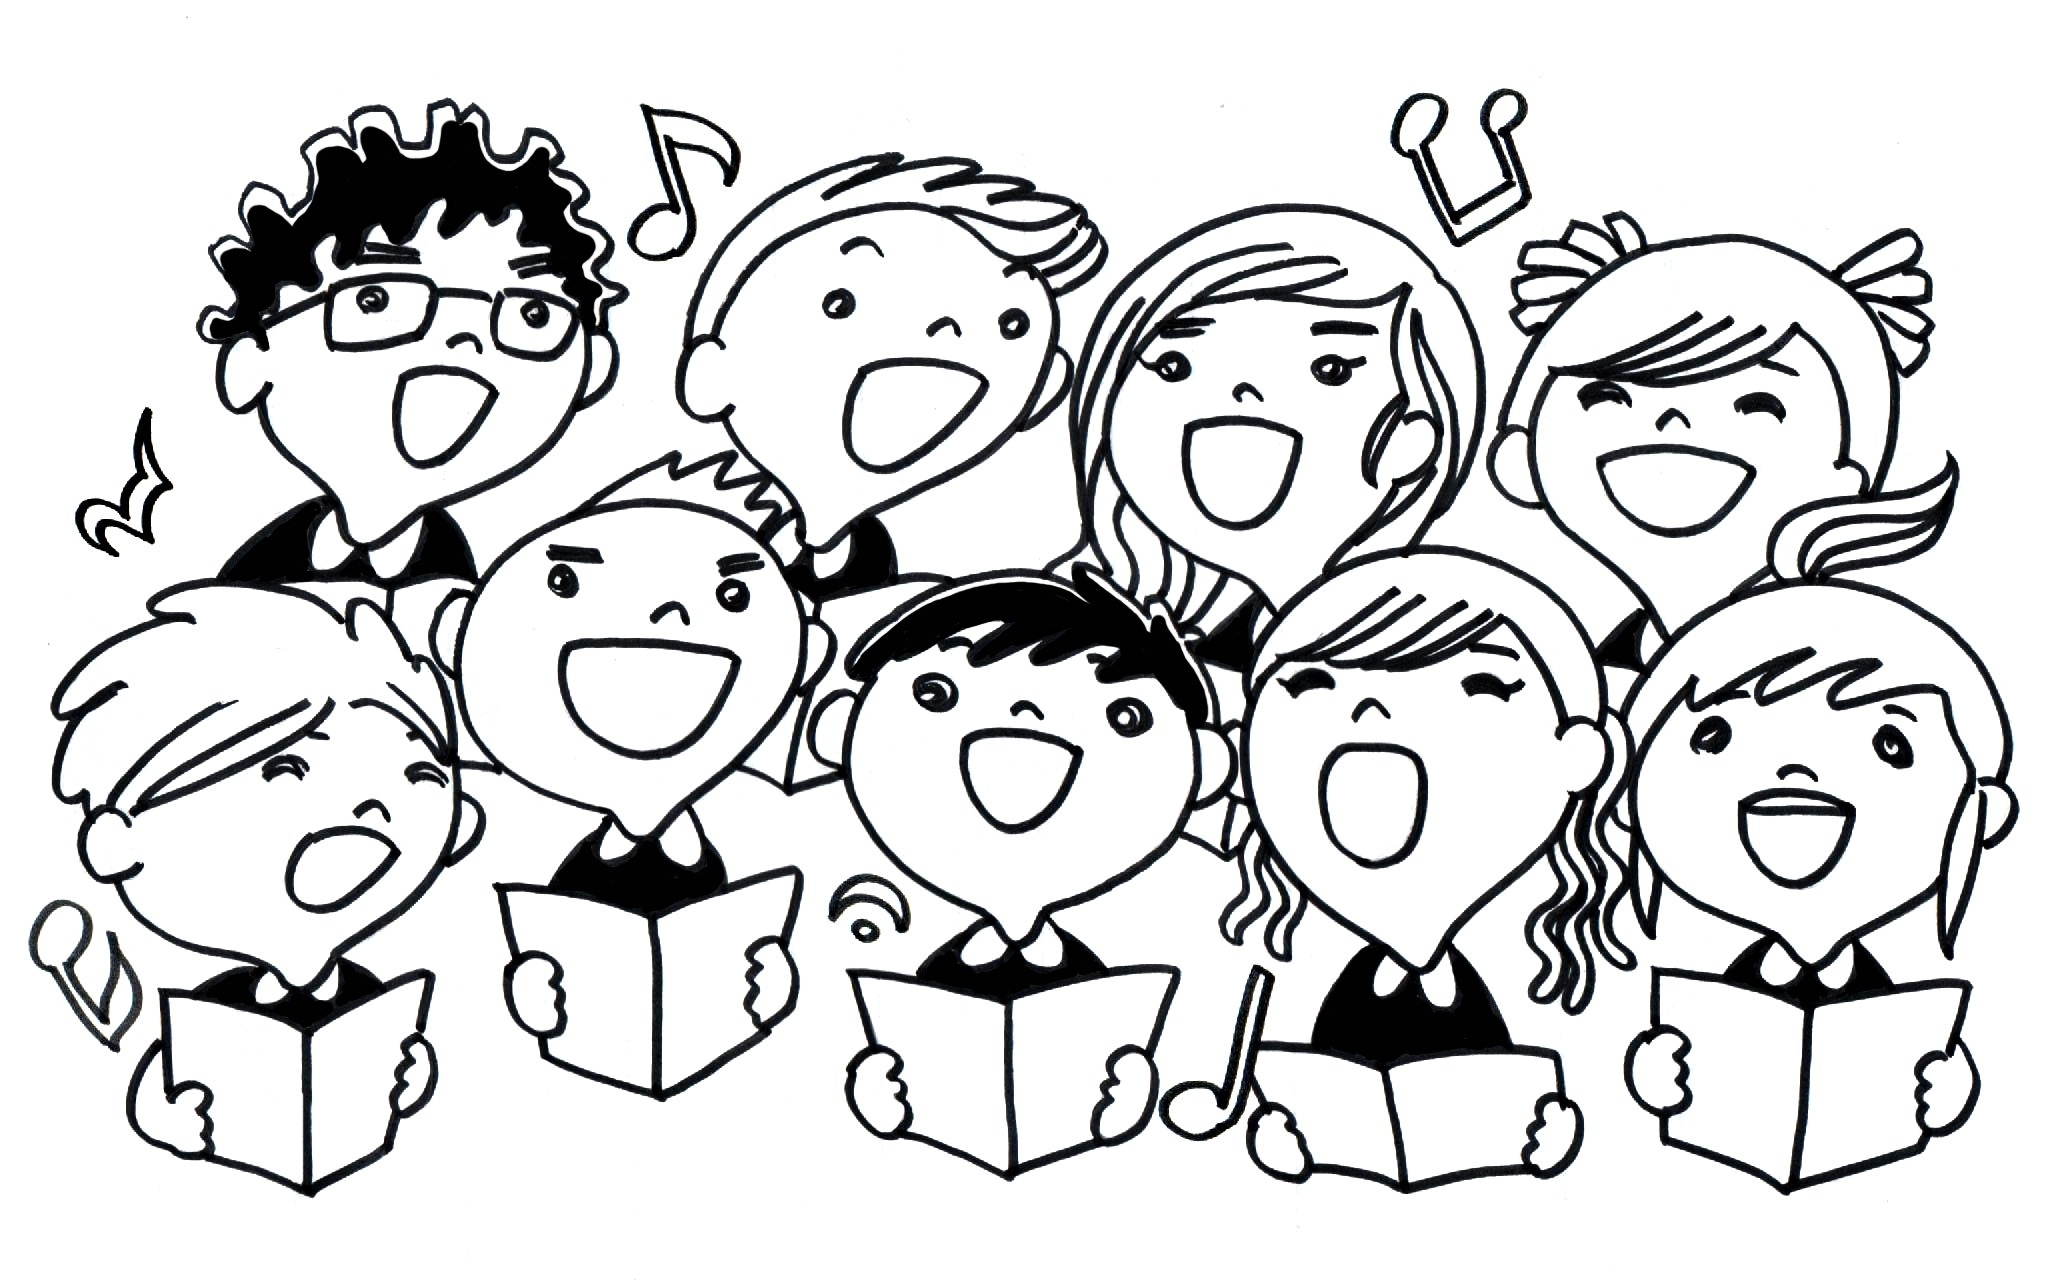 Choir clipart african american. Awesome gallery digital collection